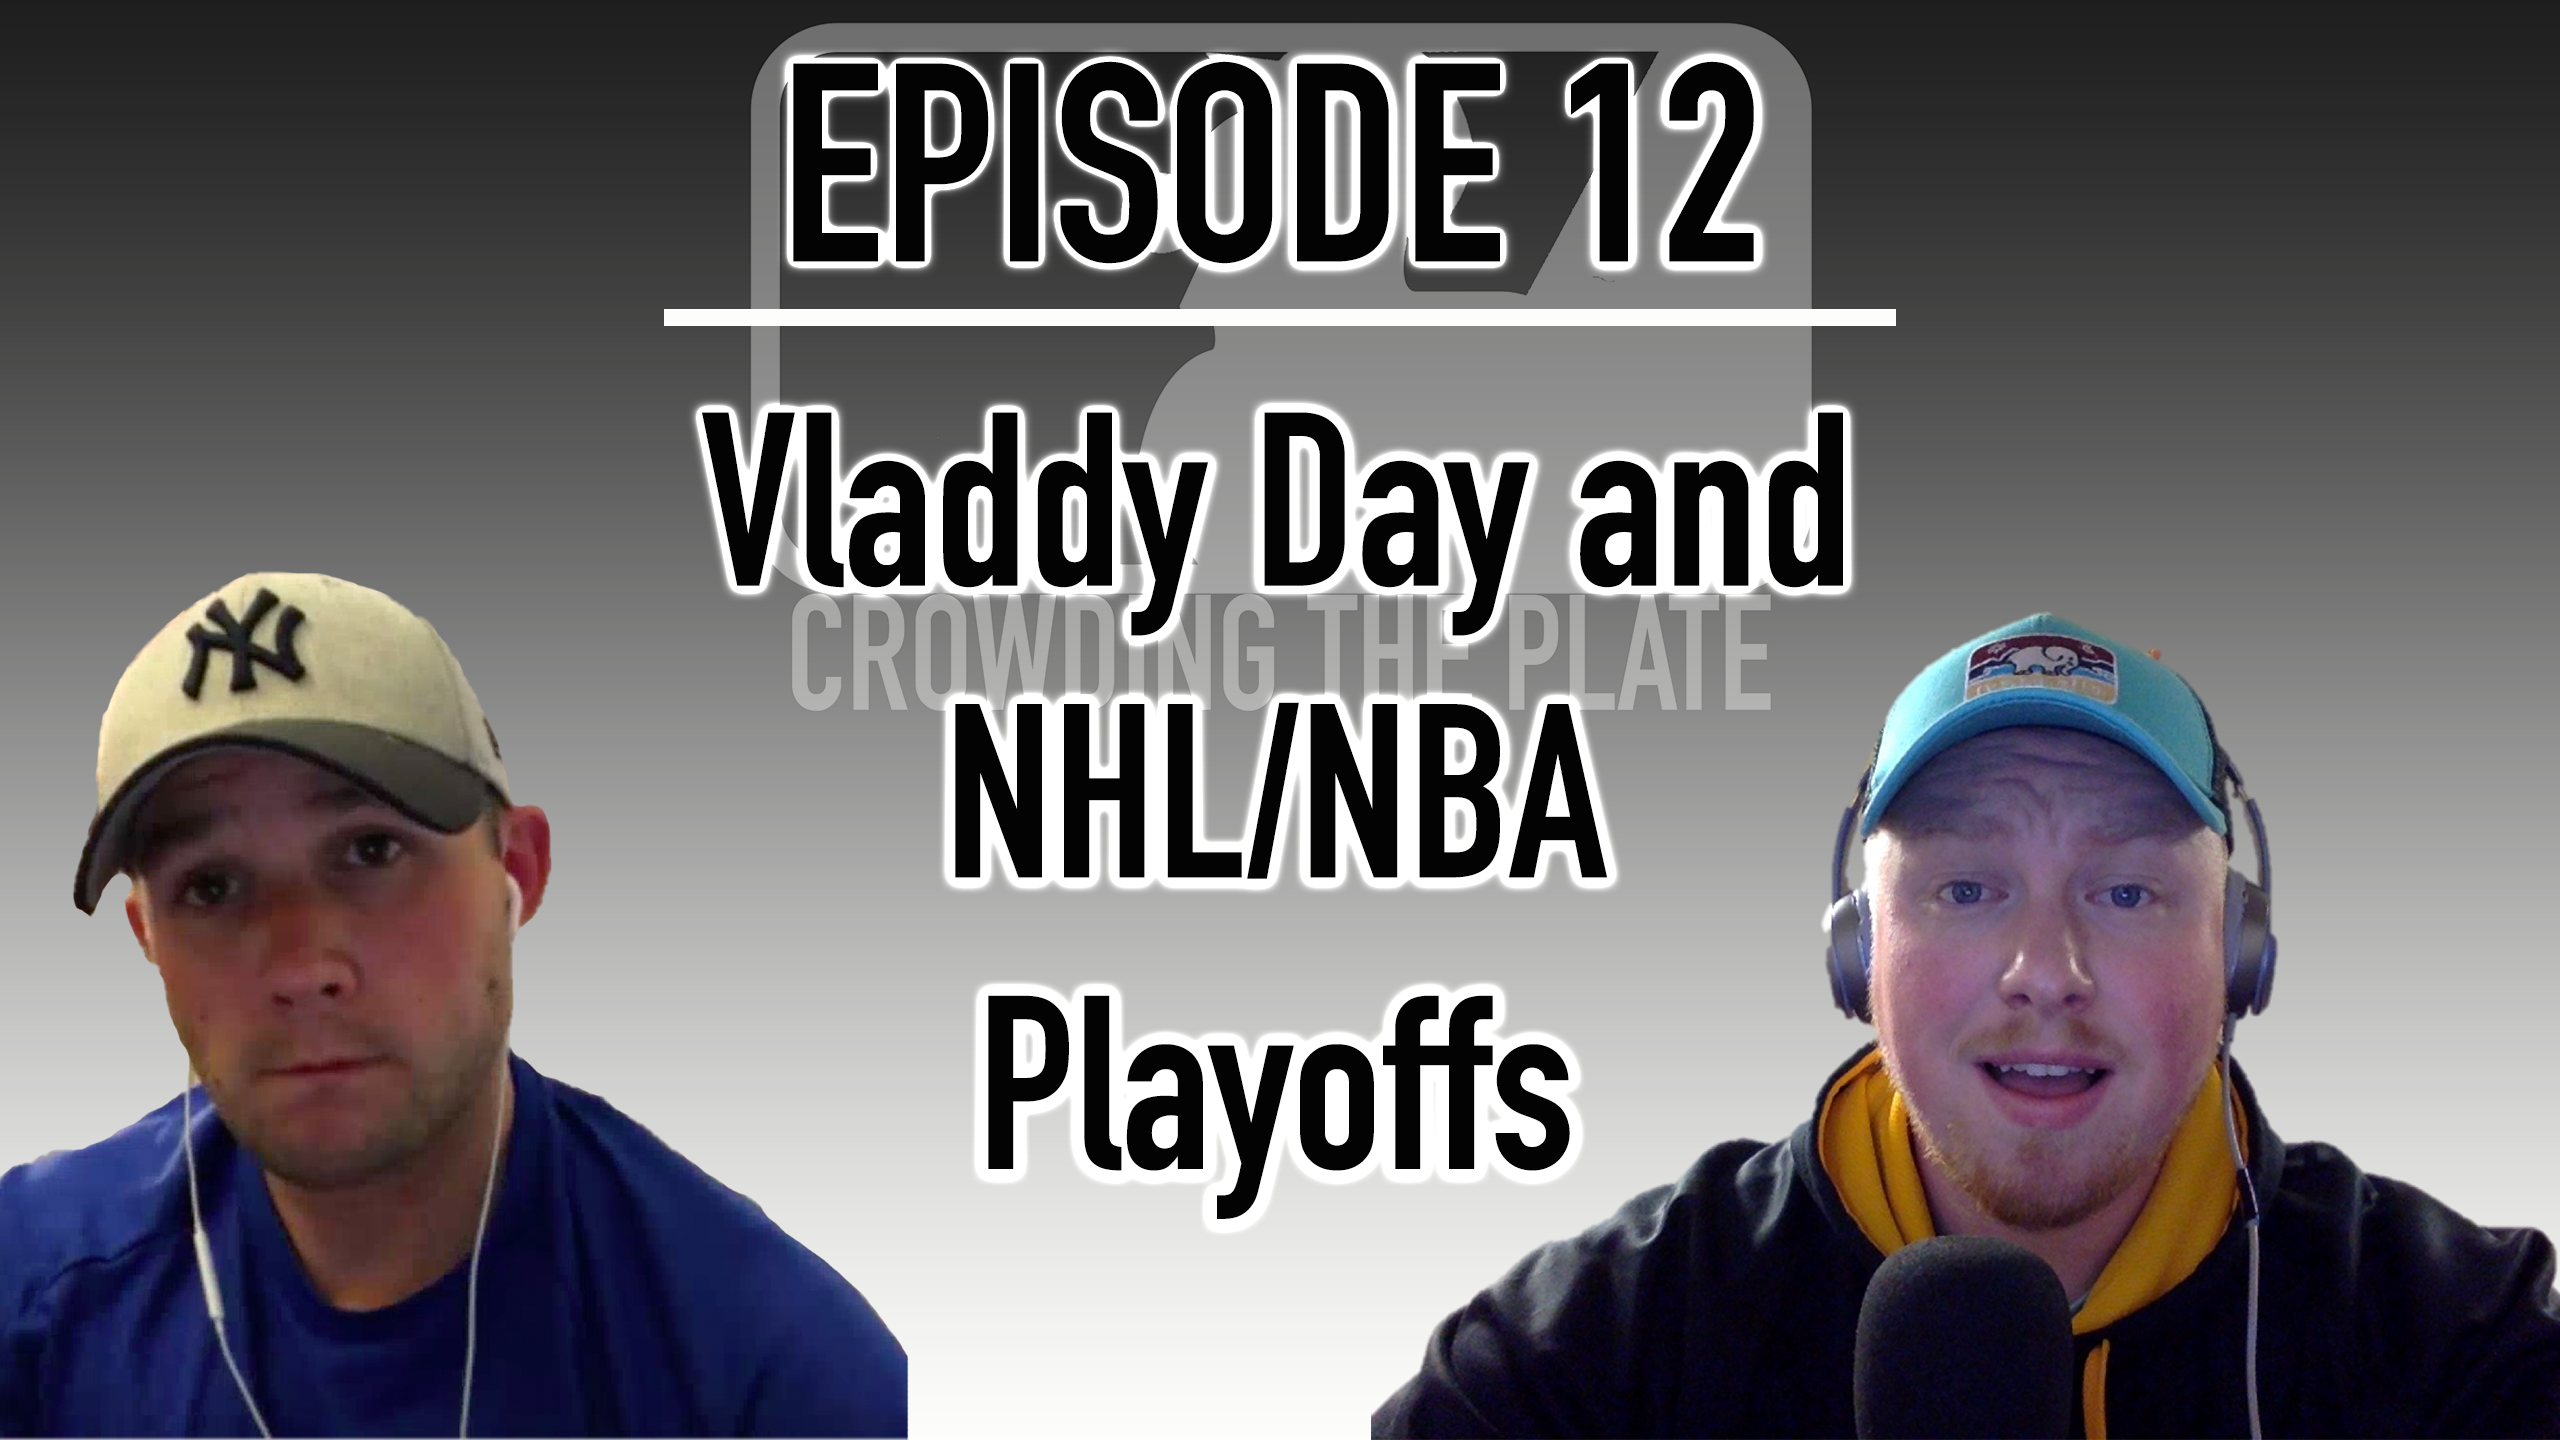 VIDEO: Crowding The Plate – Episode 12 – Vladdy Day and NHL/NBA Playoffs (Seriously)